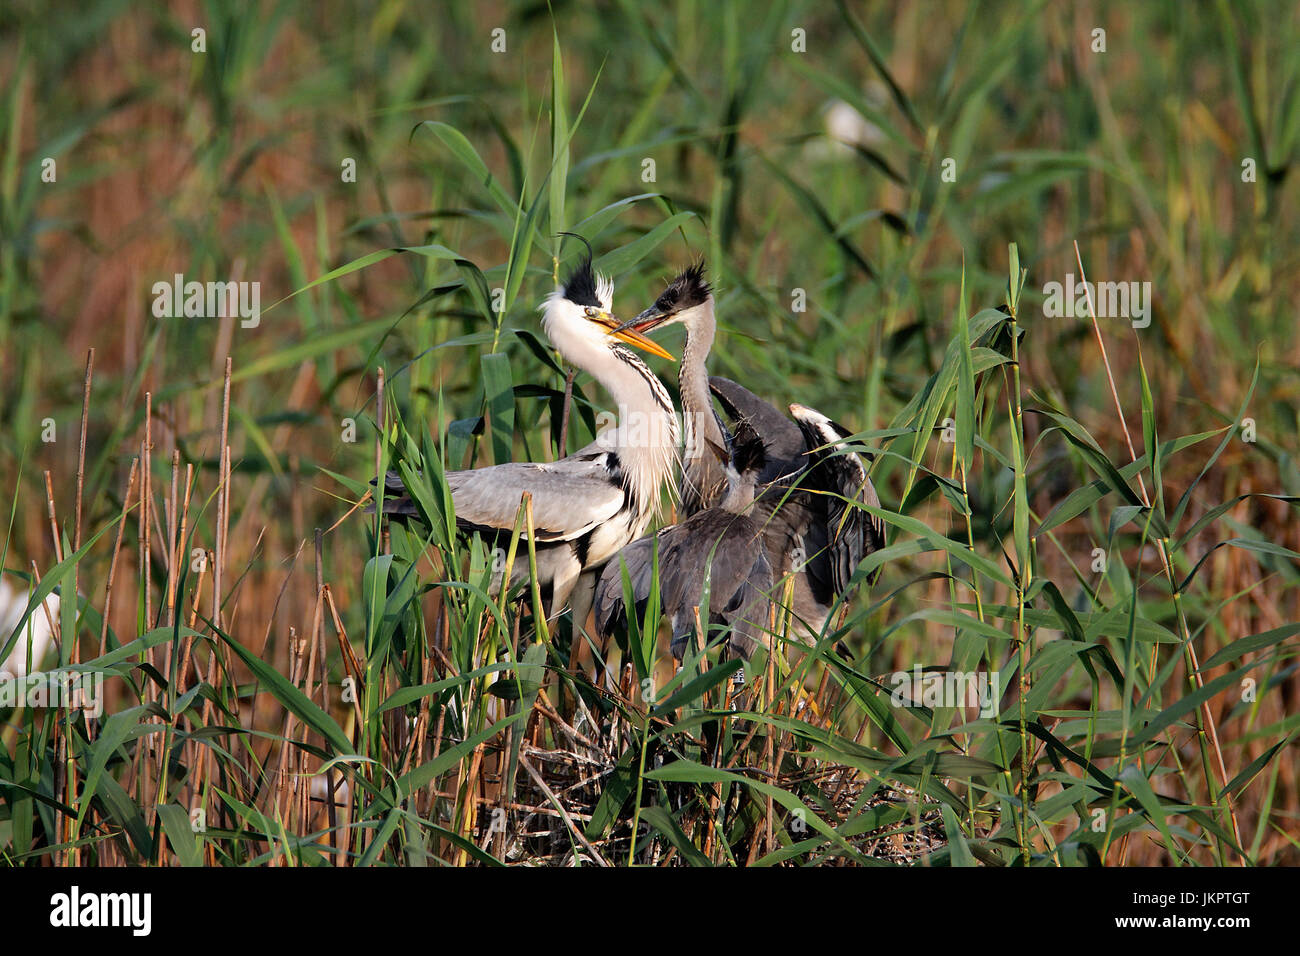 The grey heron nesting in bird colony in Lonjsko polje, Croatia Stock Photo